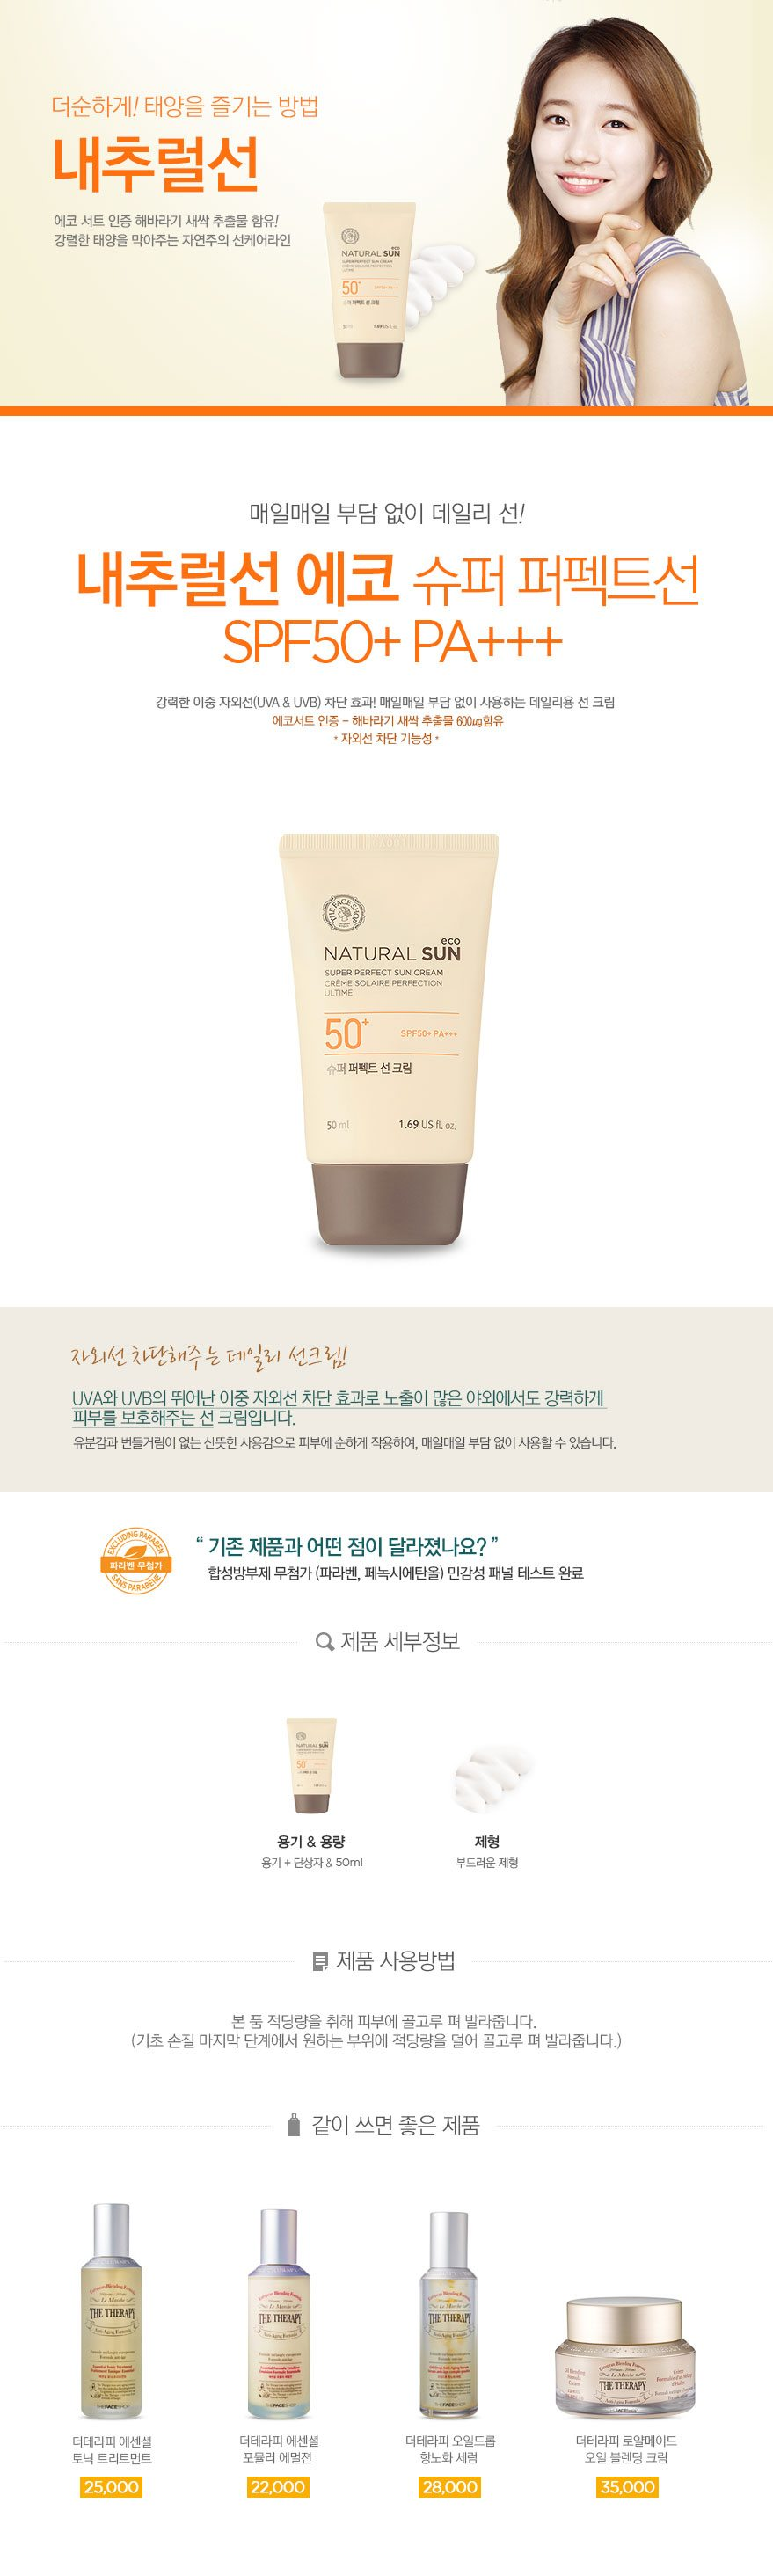 Natural Sunscreen For Daily Use